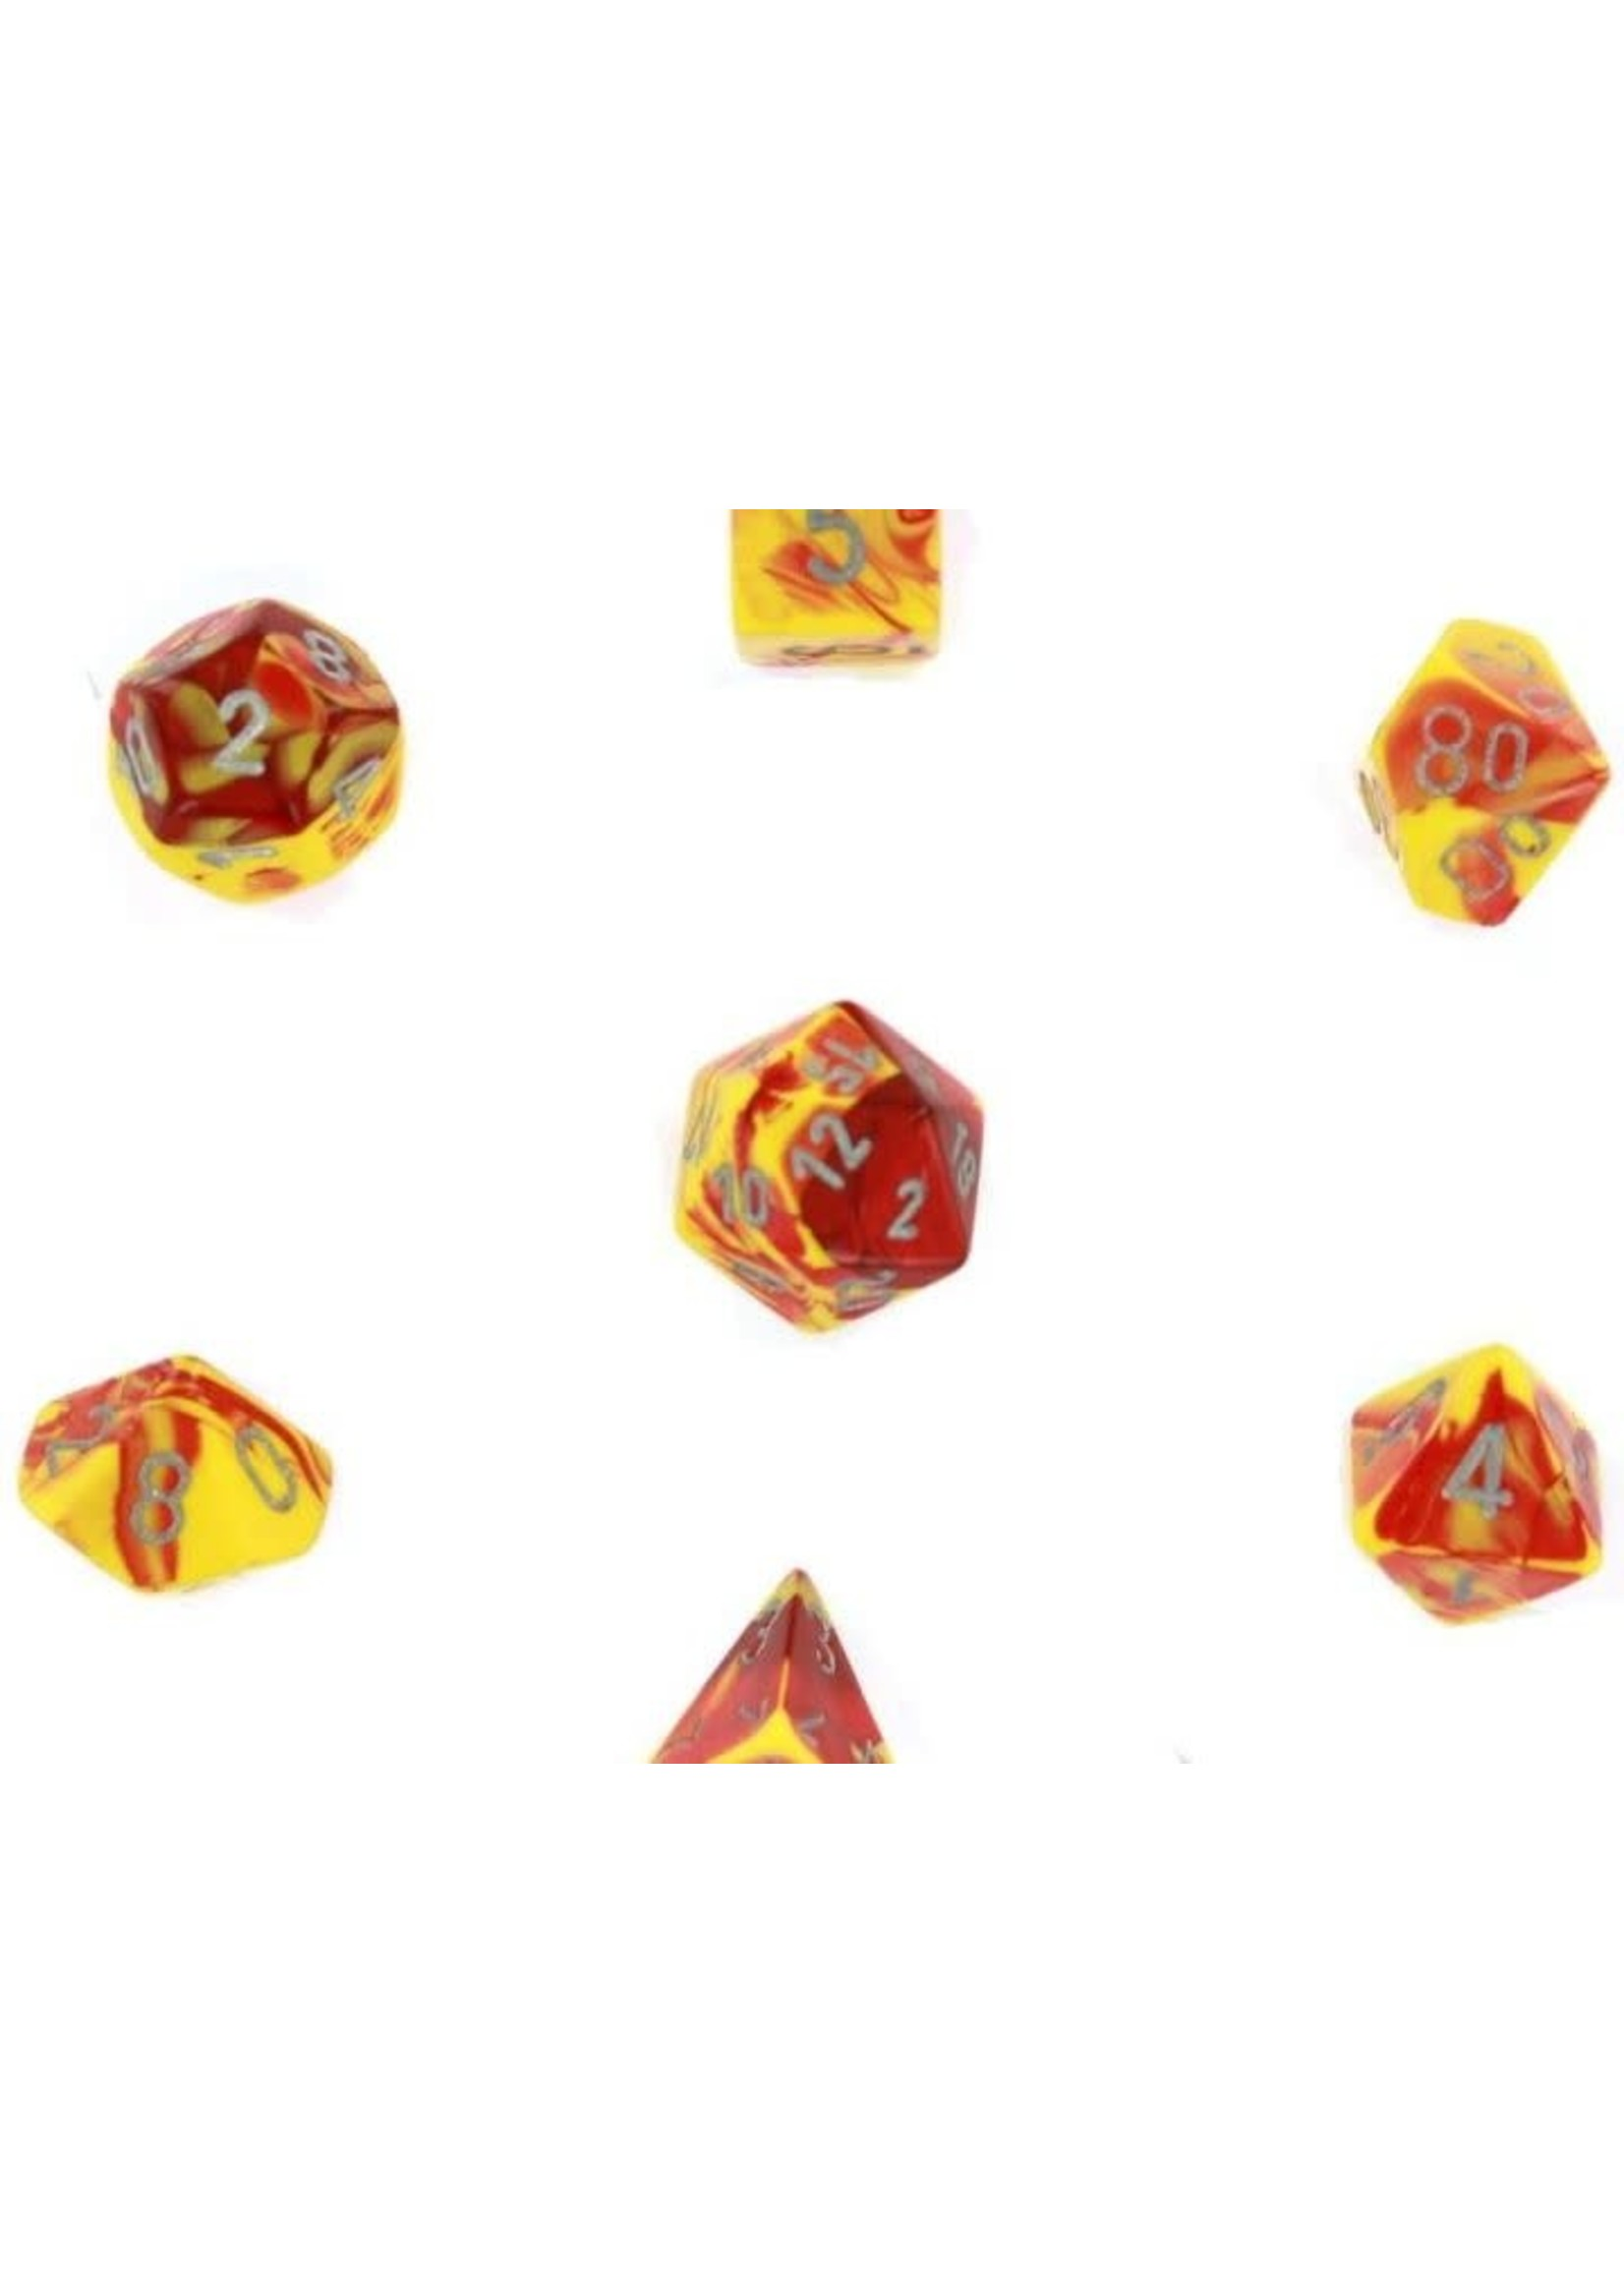 Gemini Polyhedral 7-Die Sets - Red-Yellow W/Silver